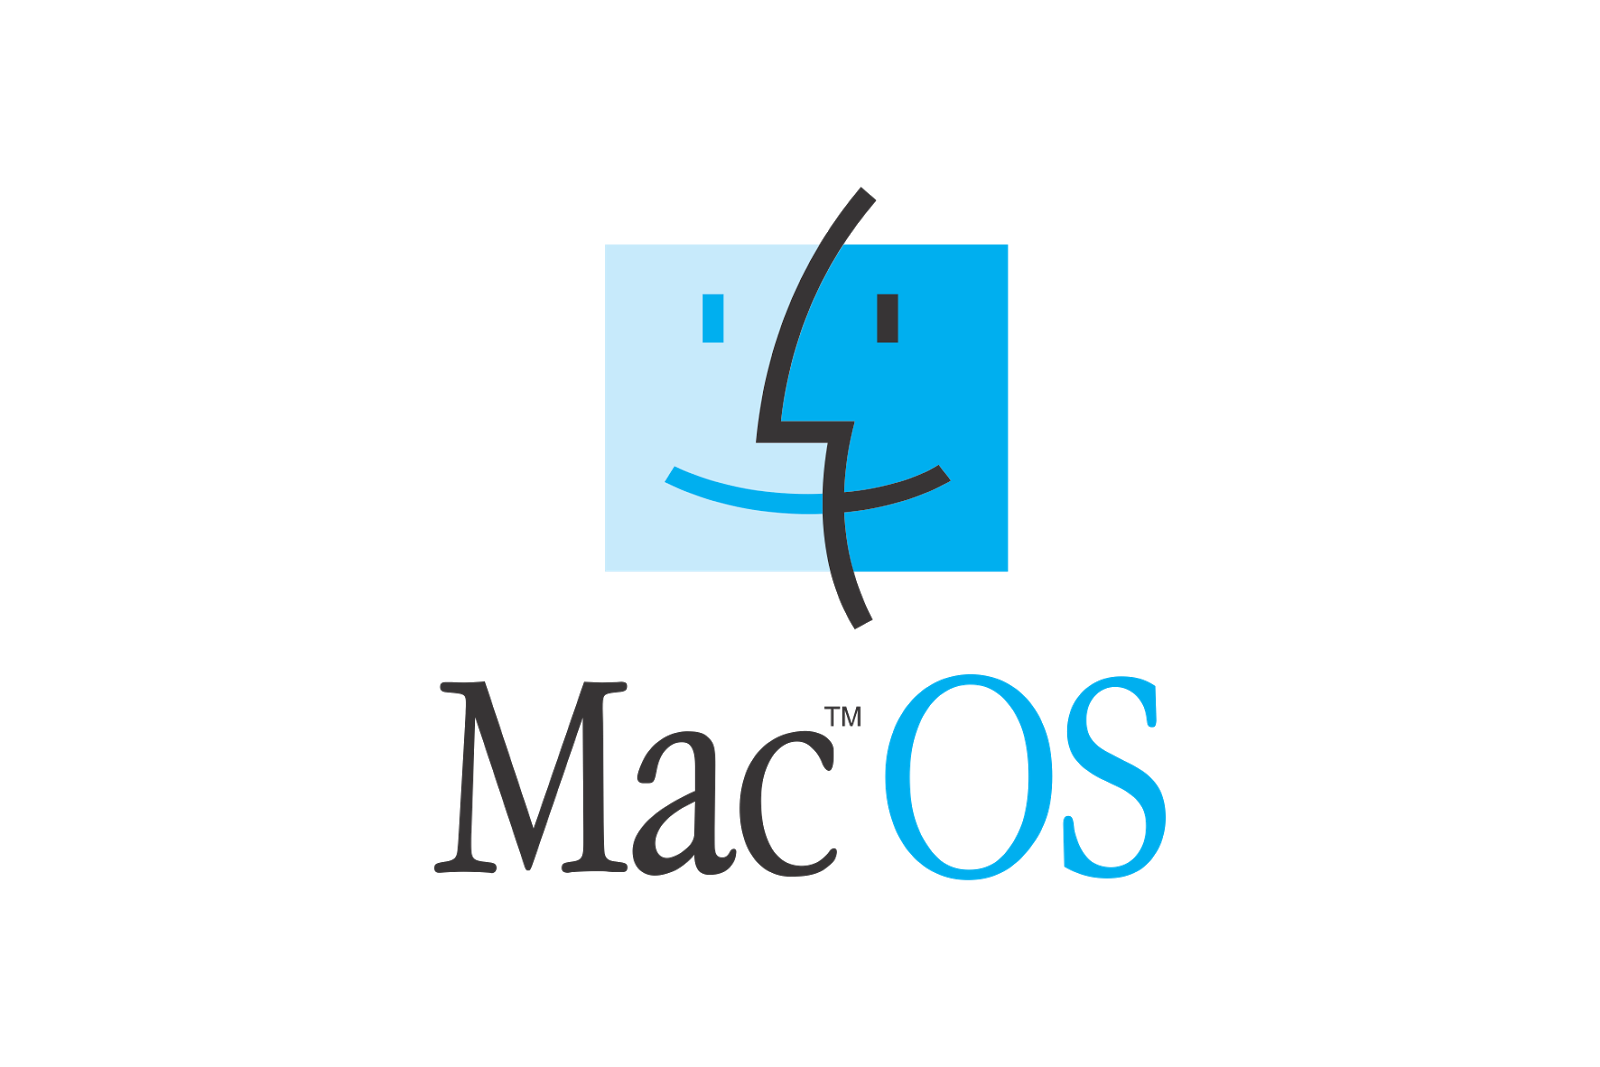 File:MacOS original logo.svg - Wikipedia